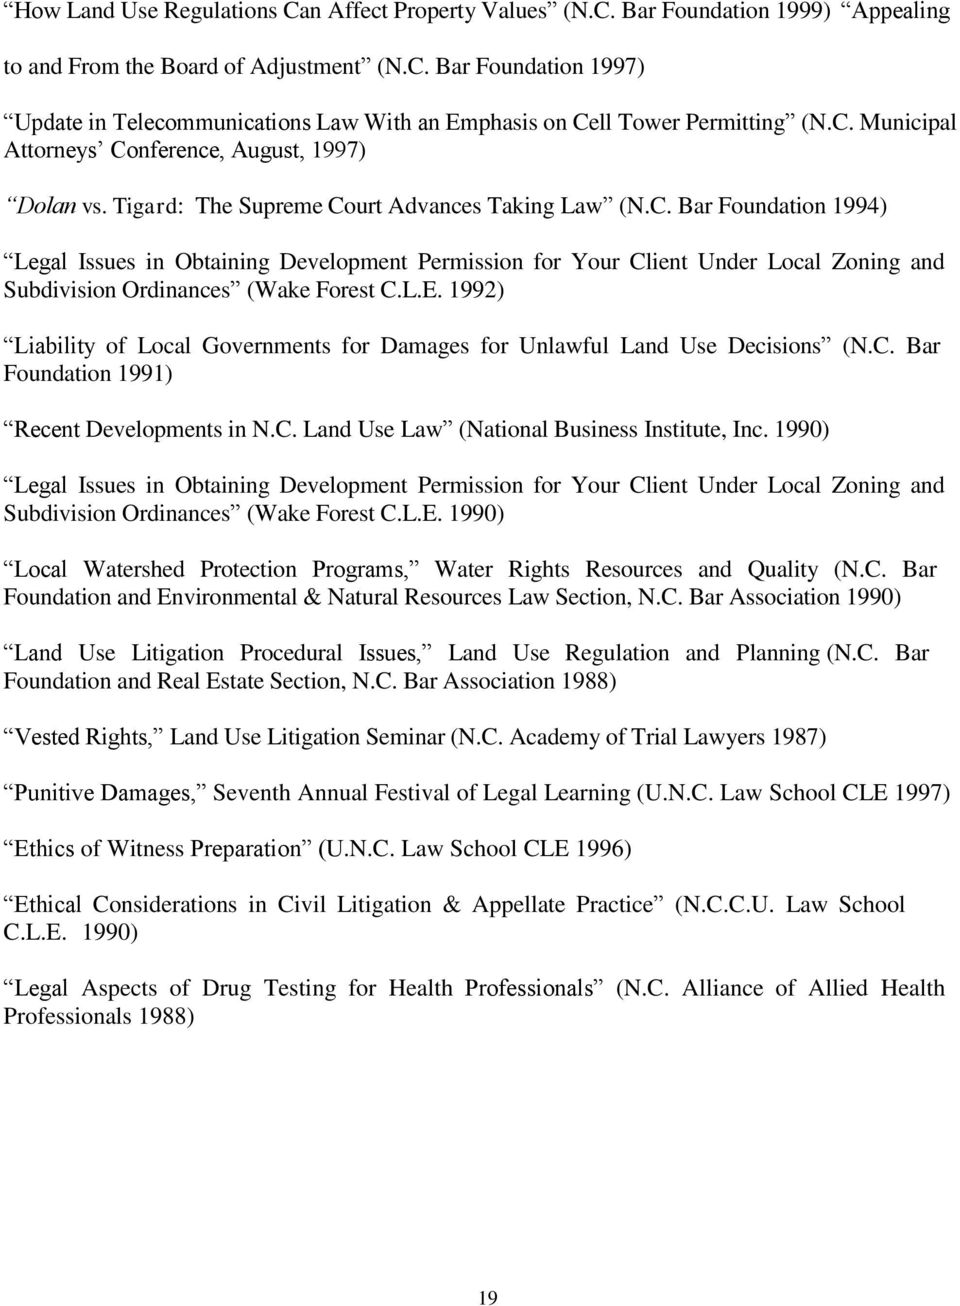 L.E. 1992) Liability of Local Governments for Damages for Unlawful Land Use Decisions (N.C. Bar Foundation 1991) Recent Developments in N.C. Land Use Law (National Business Institute, Inc.